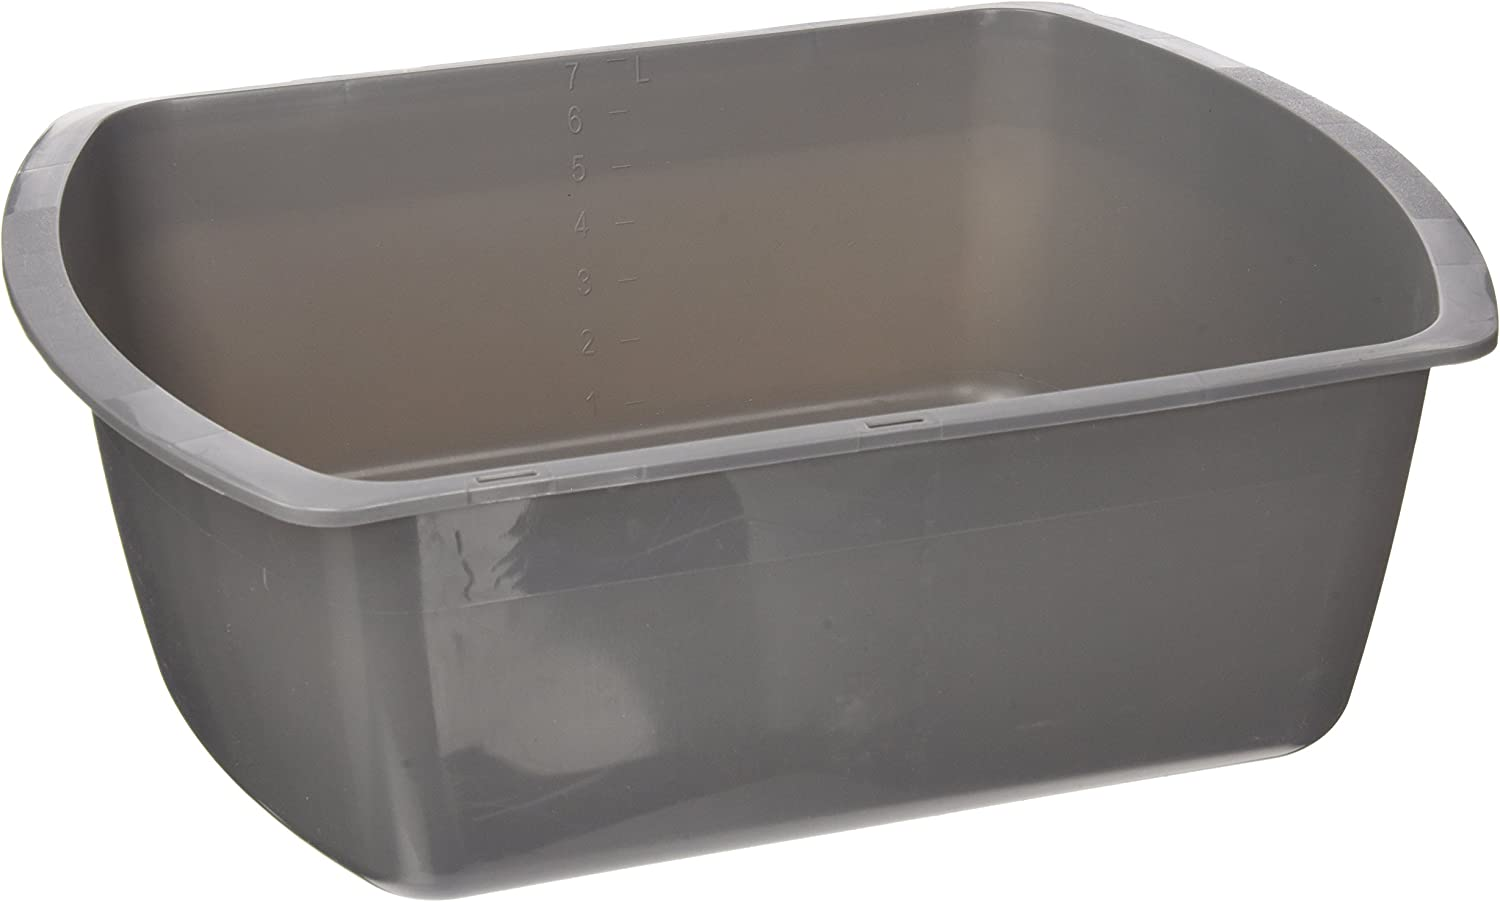 Medline Rectangular Plastic Wash Basins, Graphite